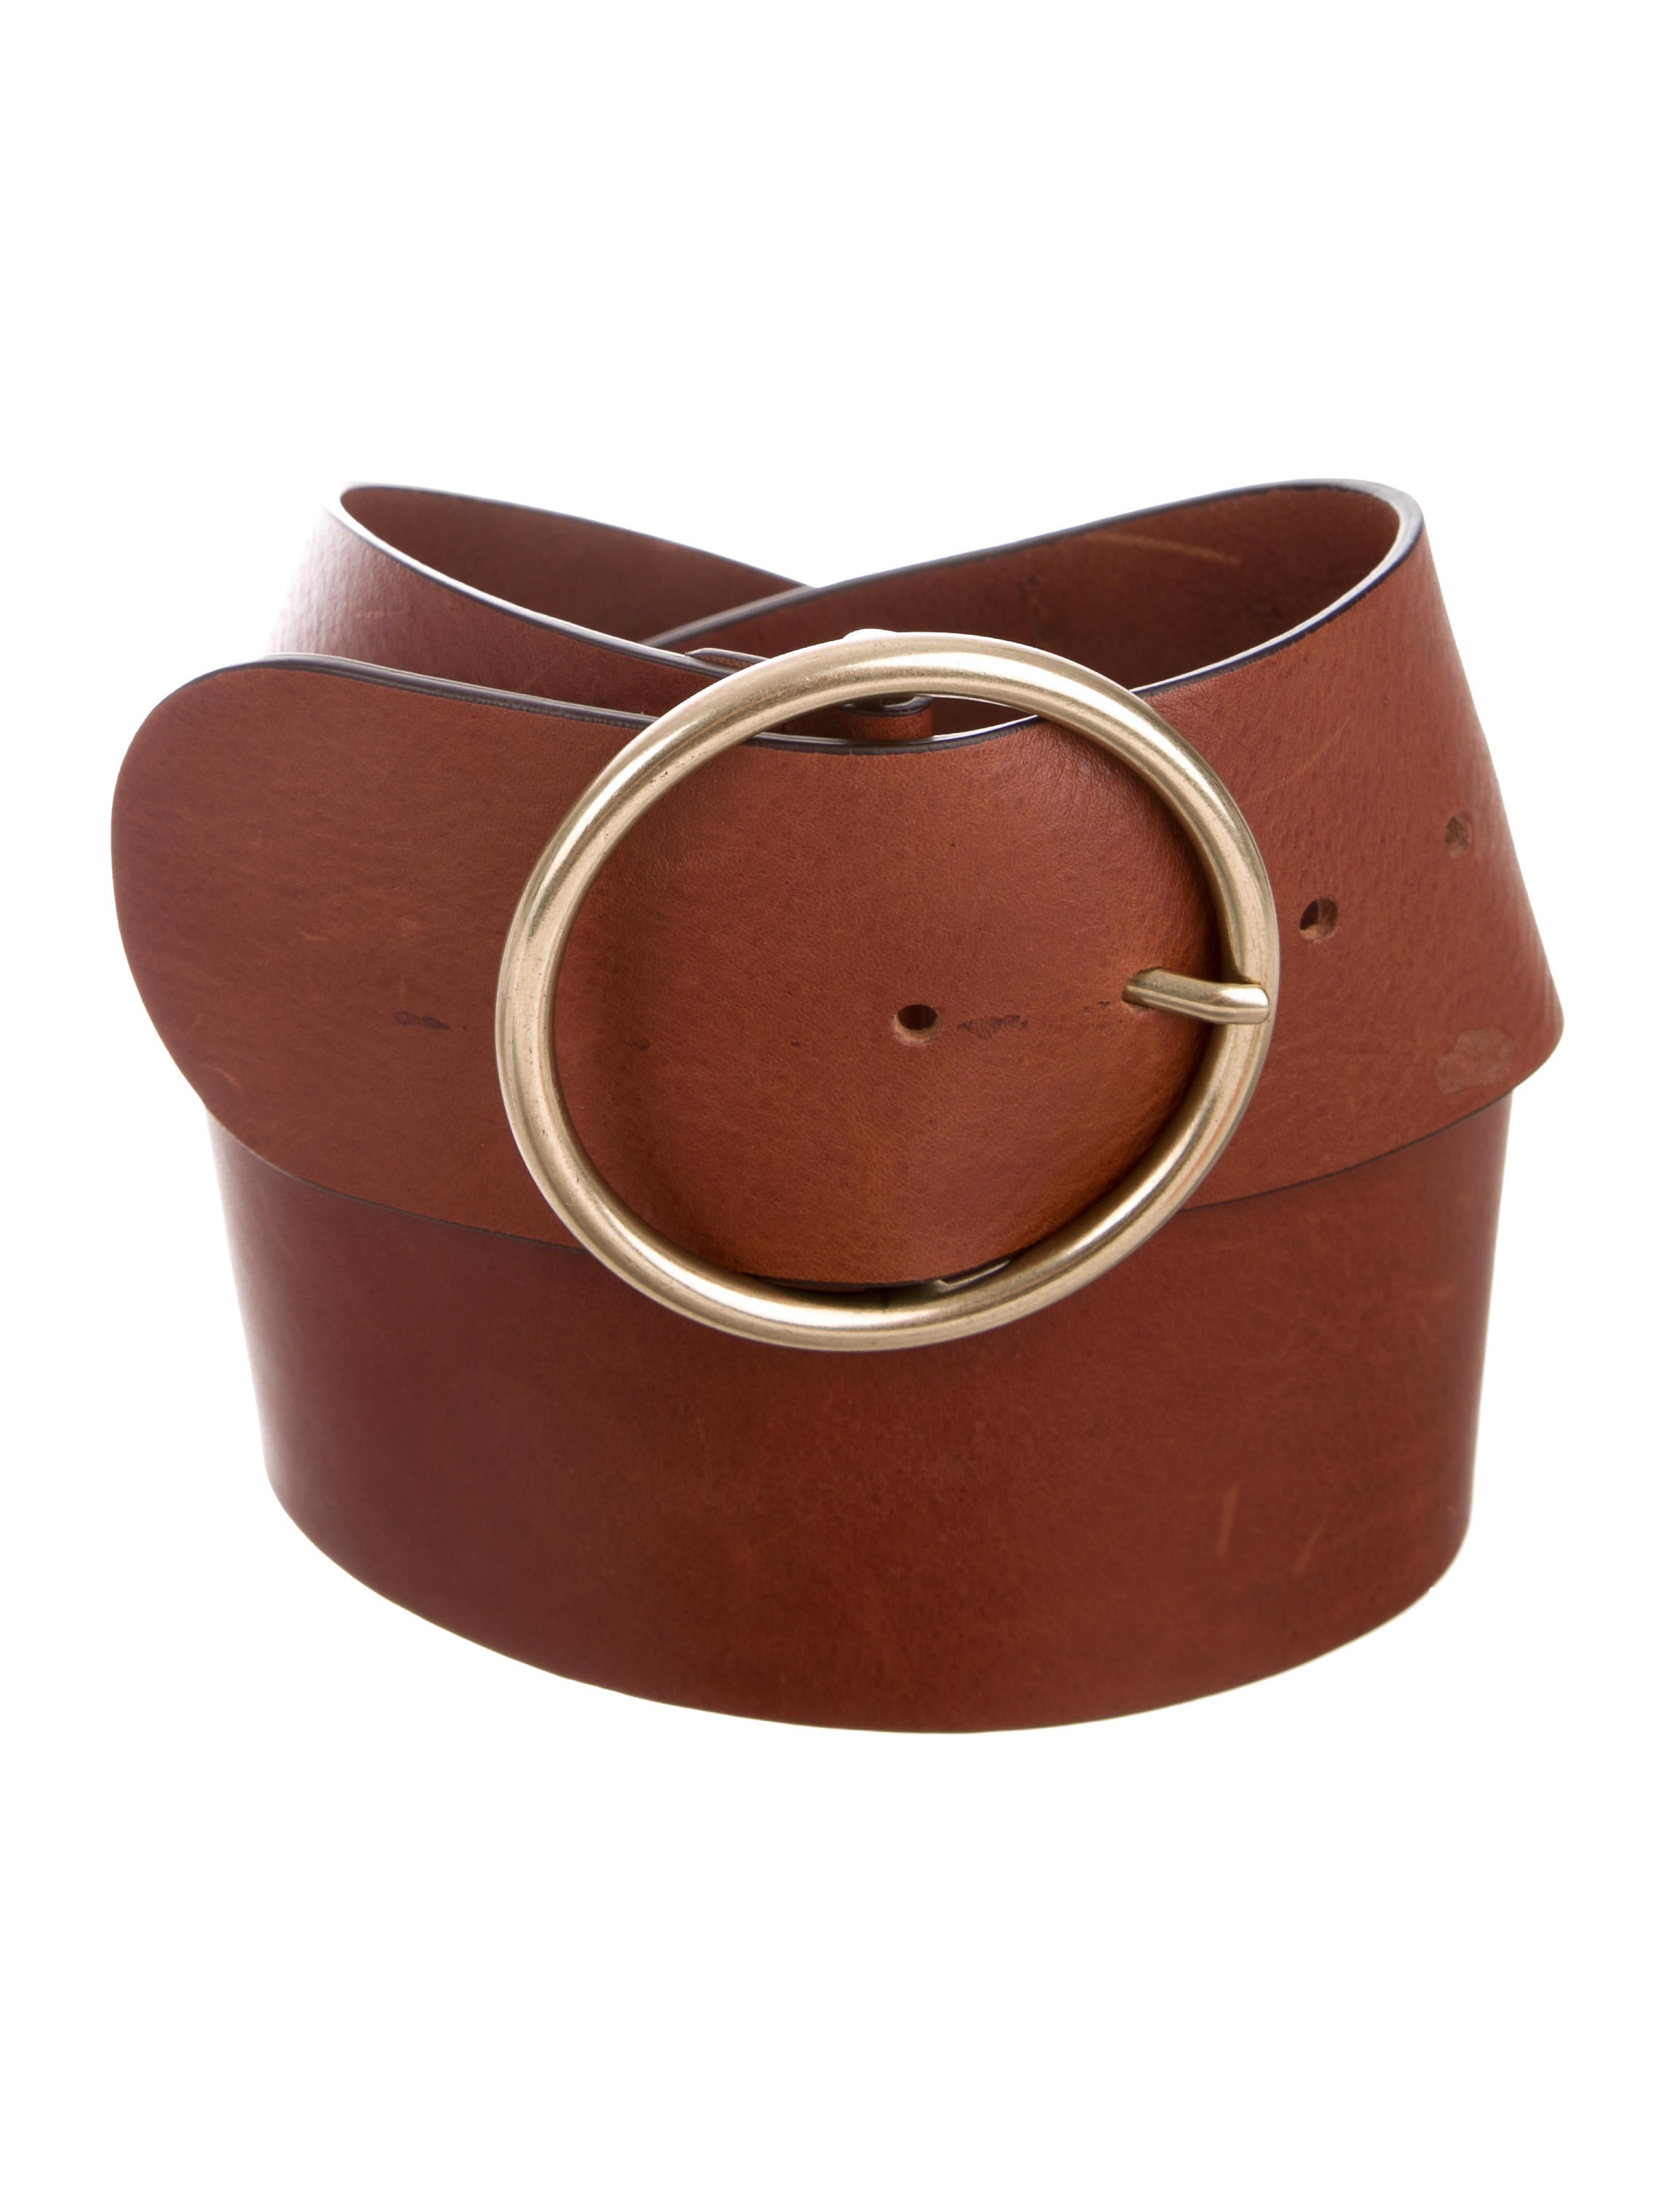 427e210113335 Gerard Darel Leather Wide Waist Belt w  Tags - Accessories ...